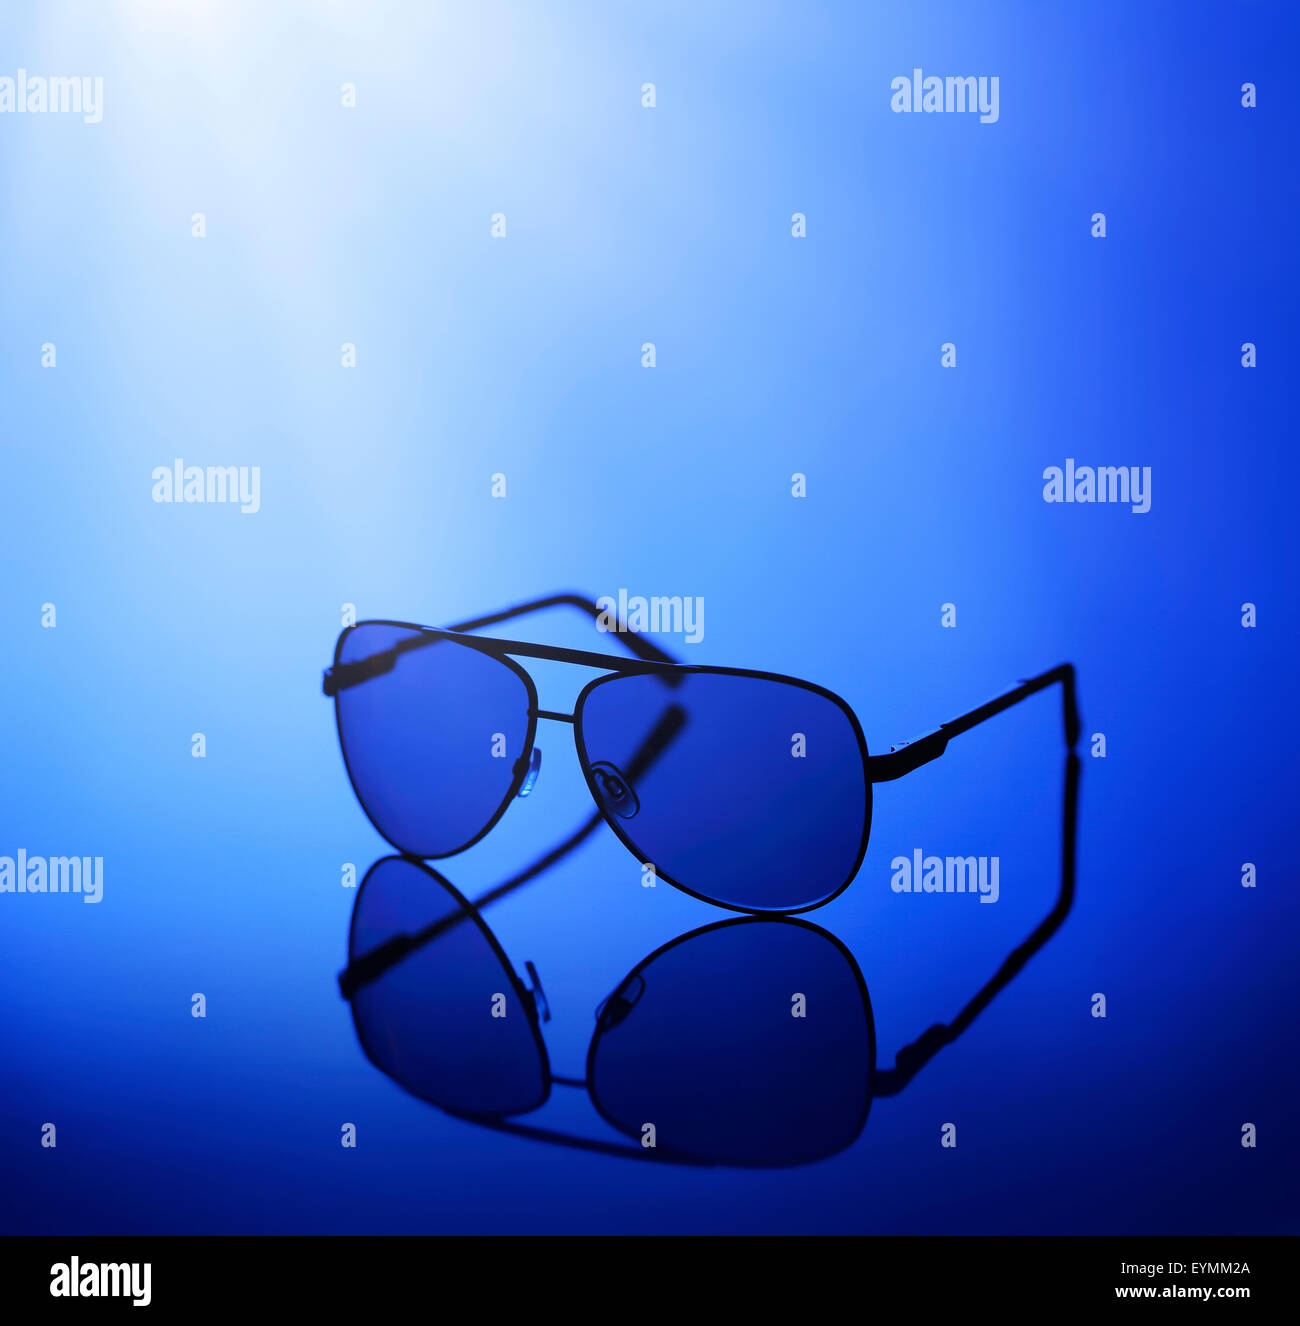 Sunglasses in blue light on a reflective background. - Stock Image